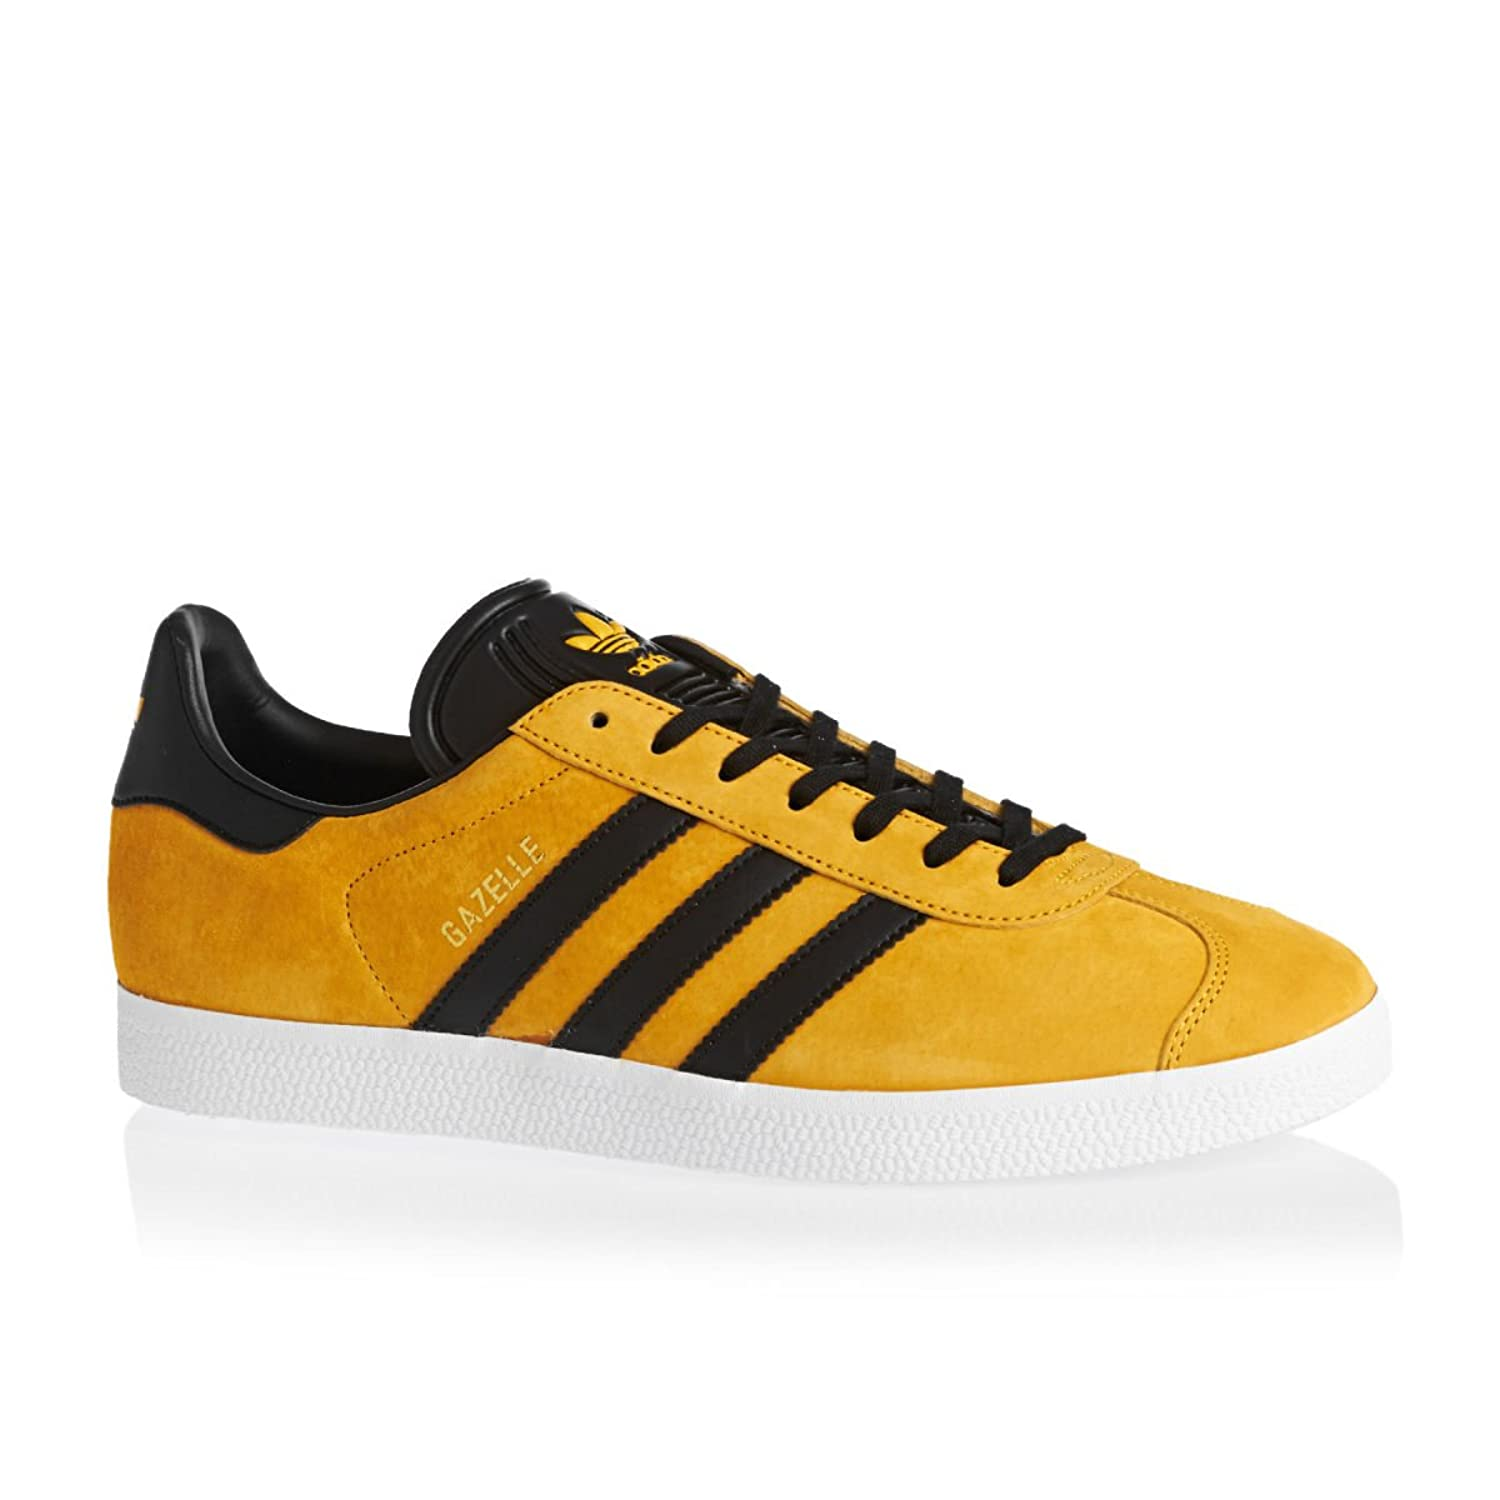 85%OFF CHAUSSURES ADIDAS GAZELLE S79979